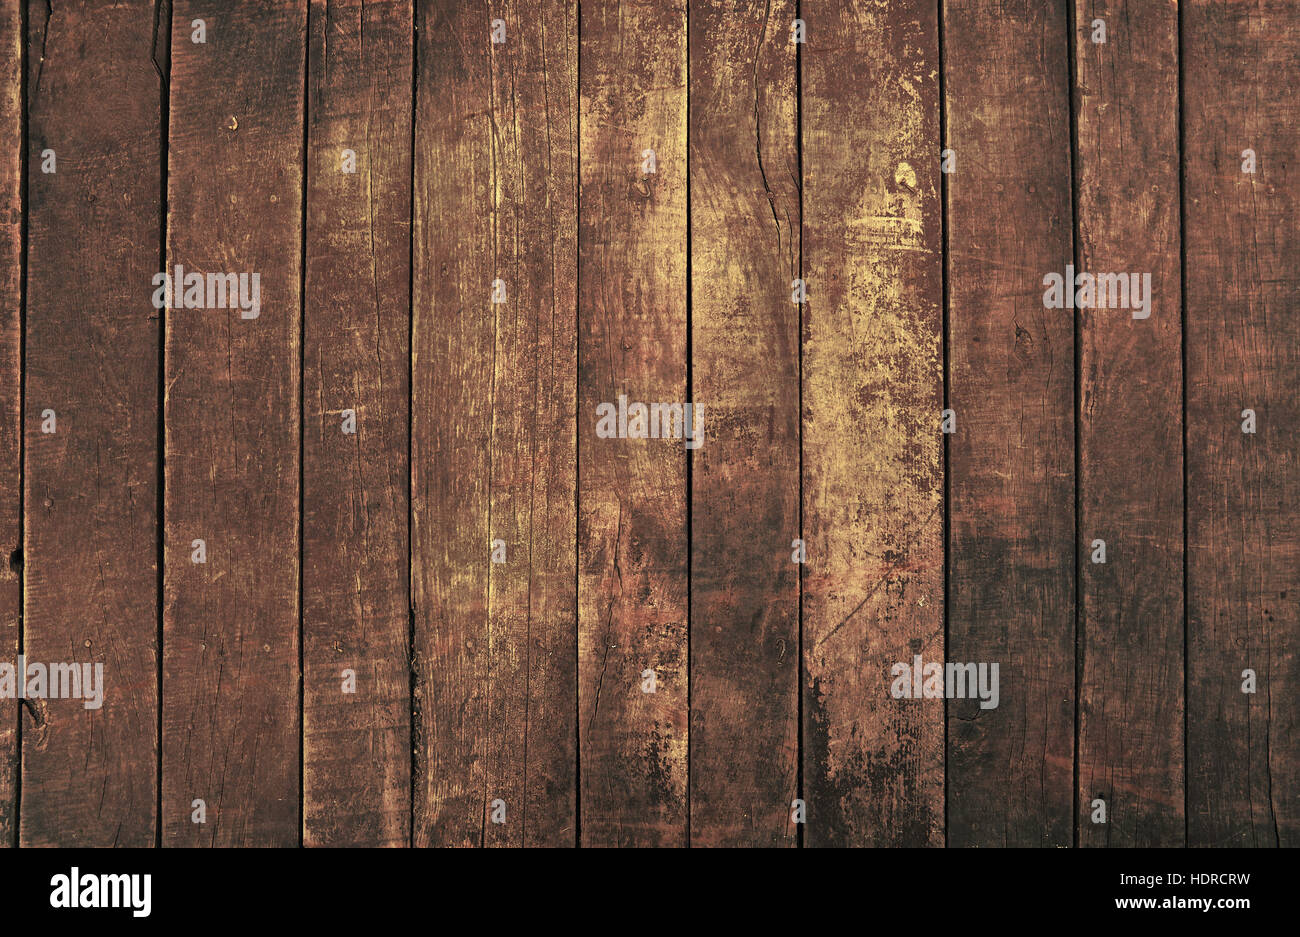 Old Vintage Aged Grunge Dark Brown Wooden Floor Planks Texture Background  With Stains And NailsOld Vintage